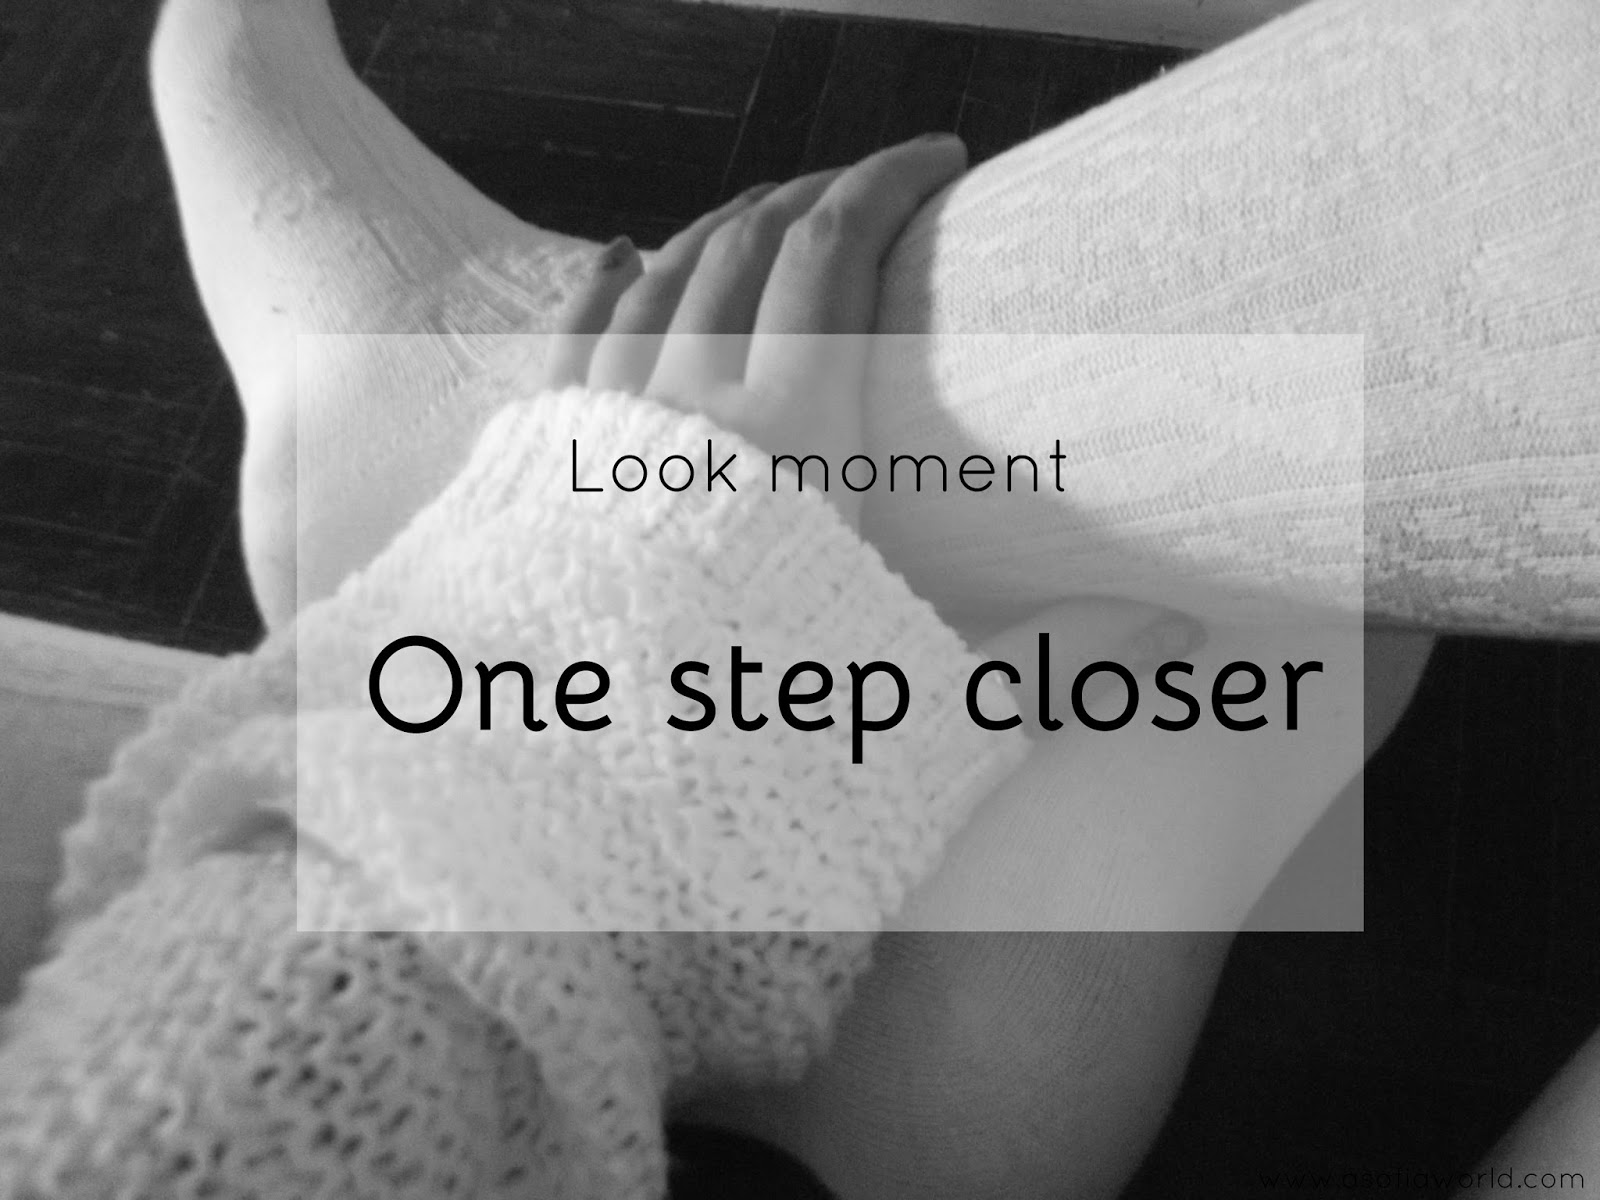 Look moment: One step closer to being two steps far from you